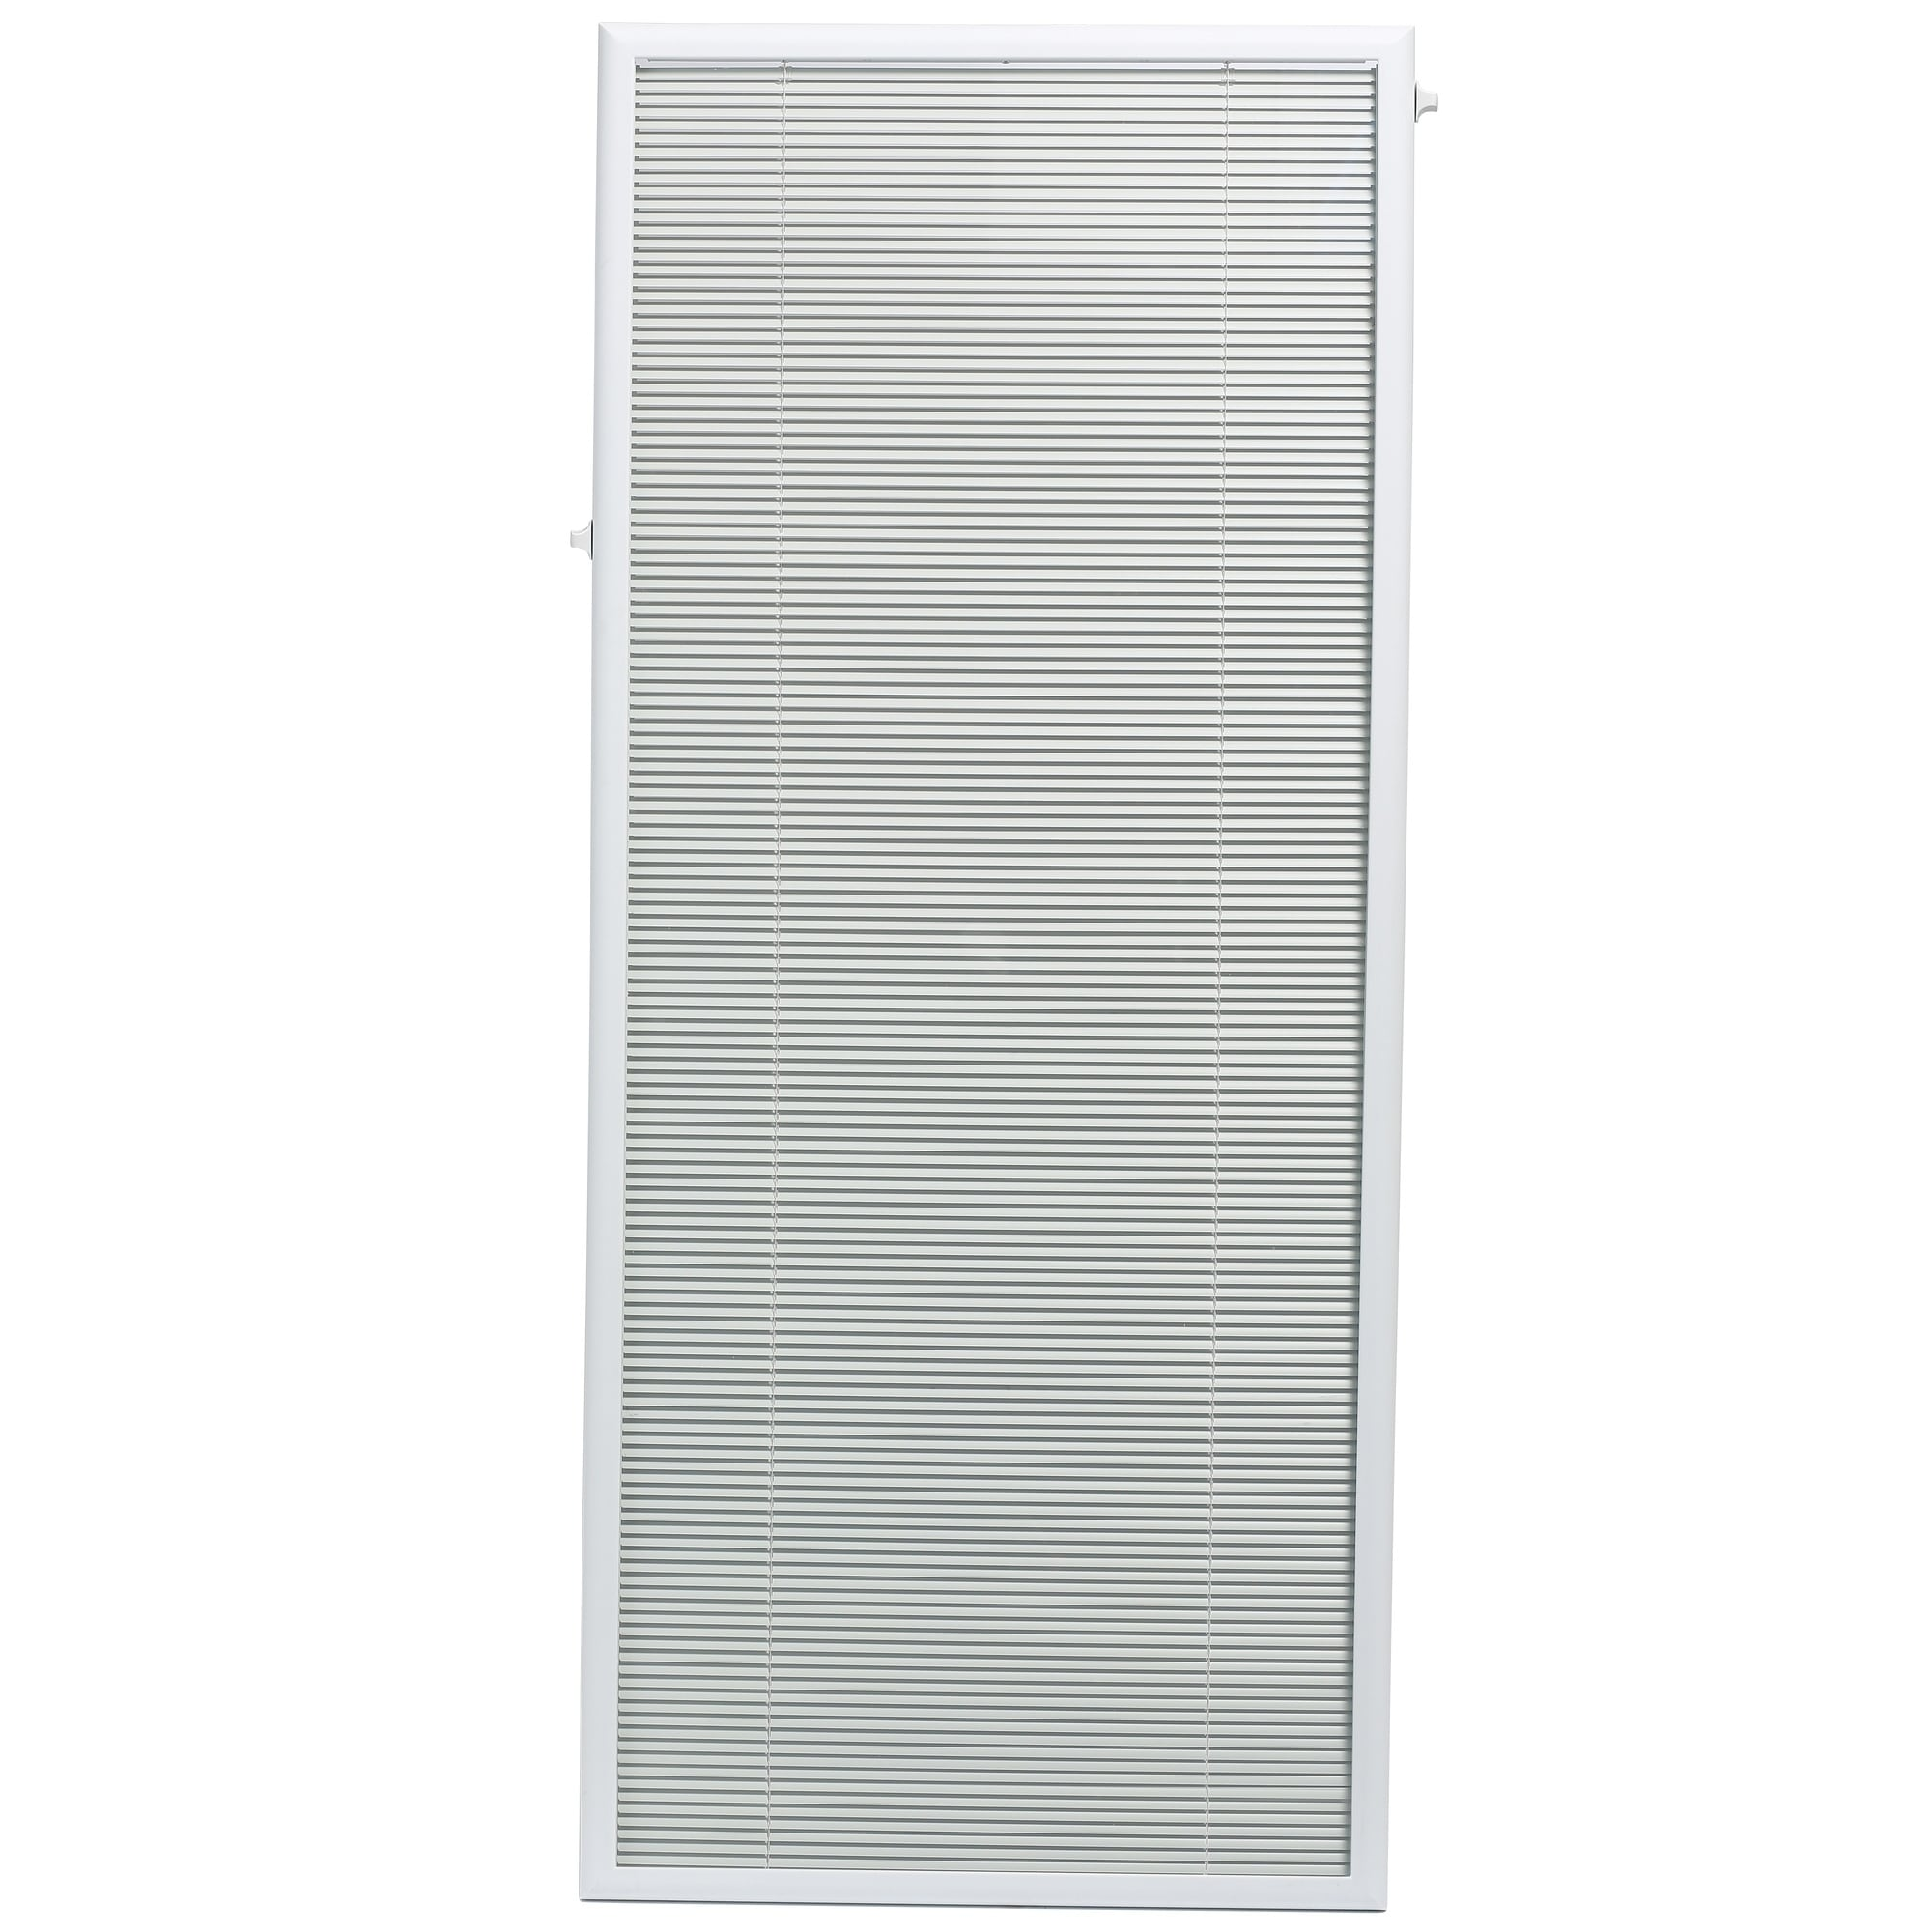 ODL White Flush Frame Enclosed Patio Door Blind (27 x 66)...